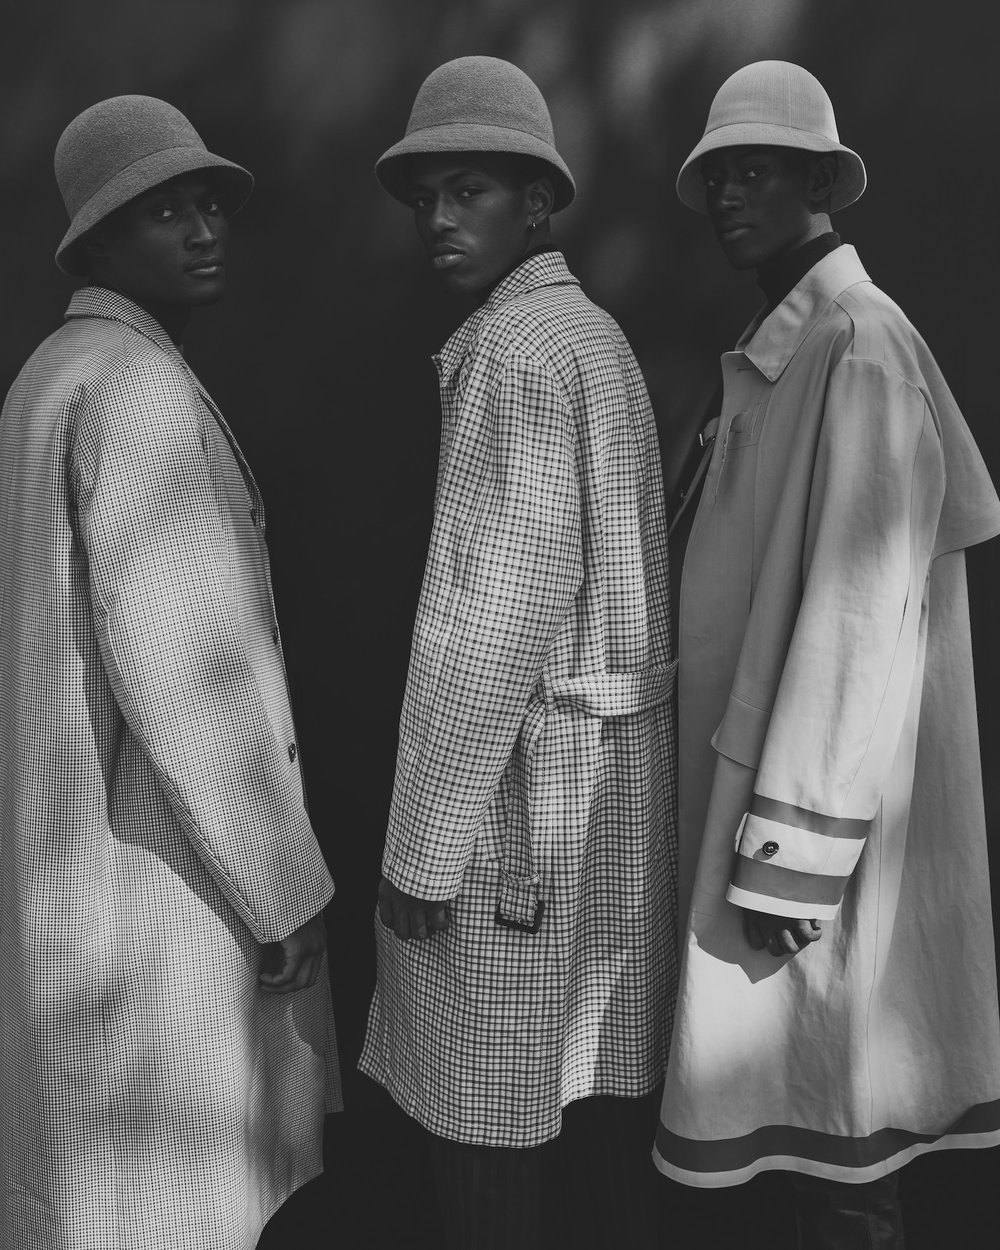 Three Men , 2018   ONLY SOLD FRAMED 11 x 14 inches Edition of 3 + 2 APs $3,000 30 x 40 inches Edition of 3 + 2 APs $5,000